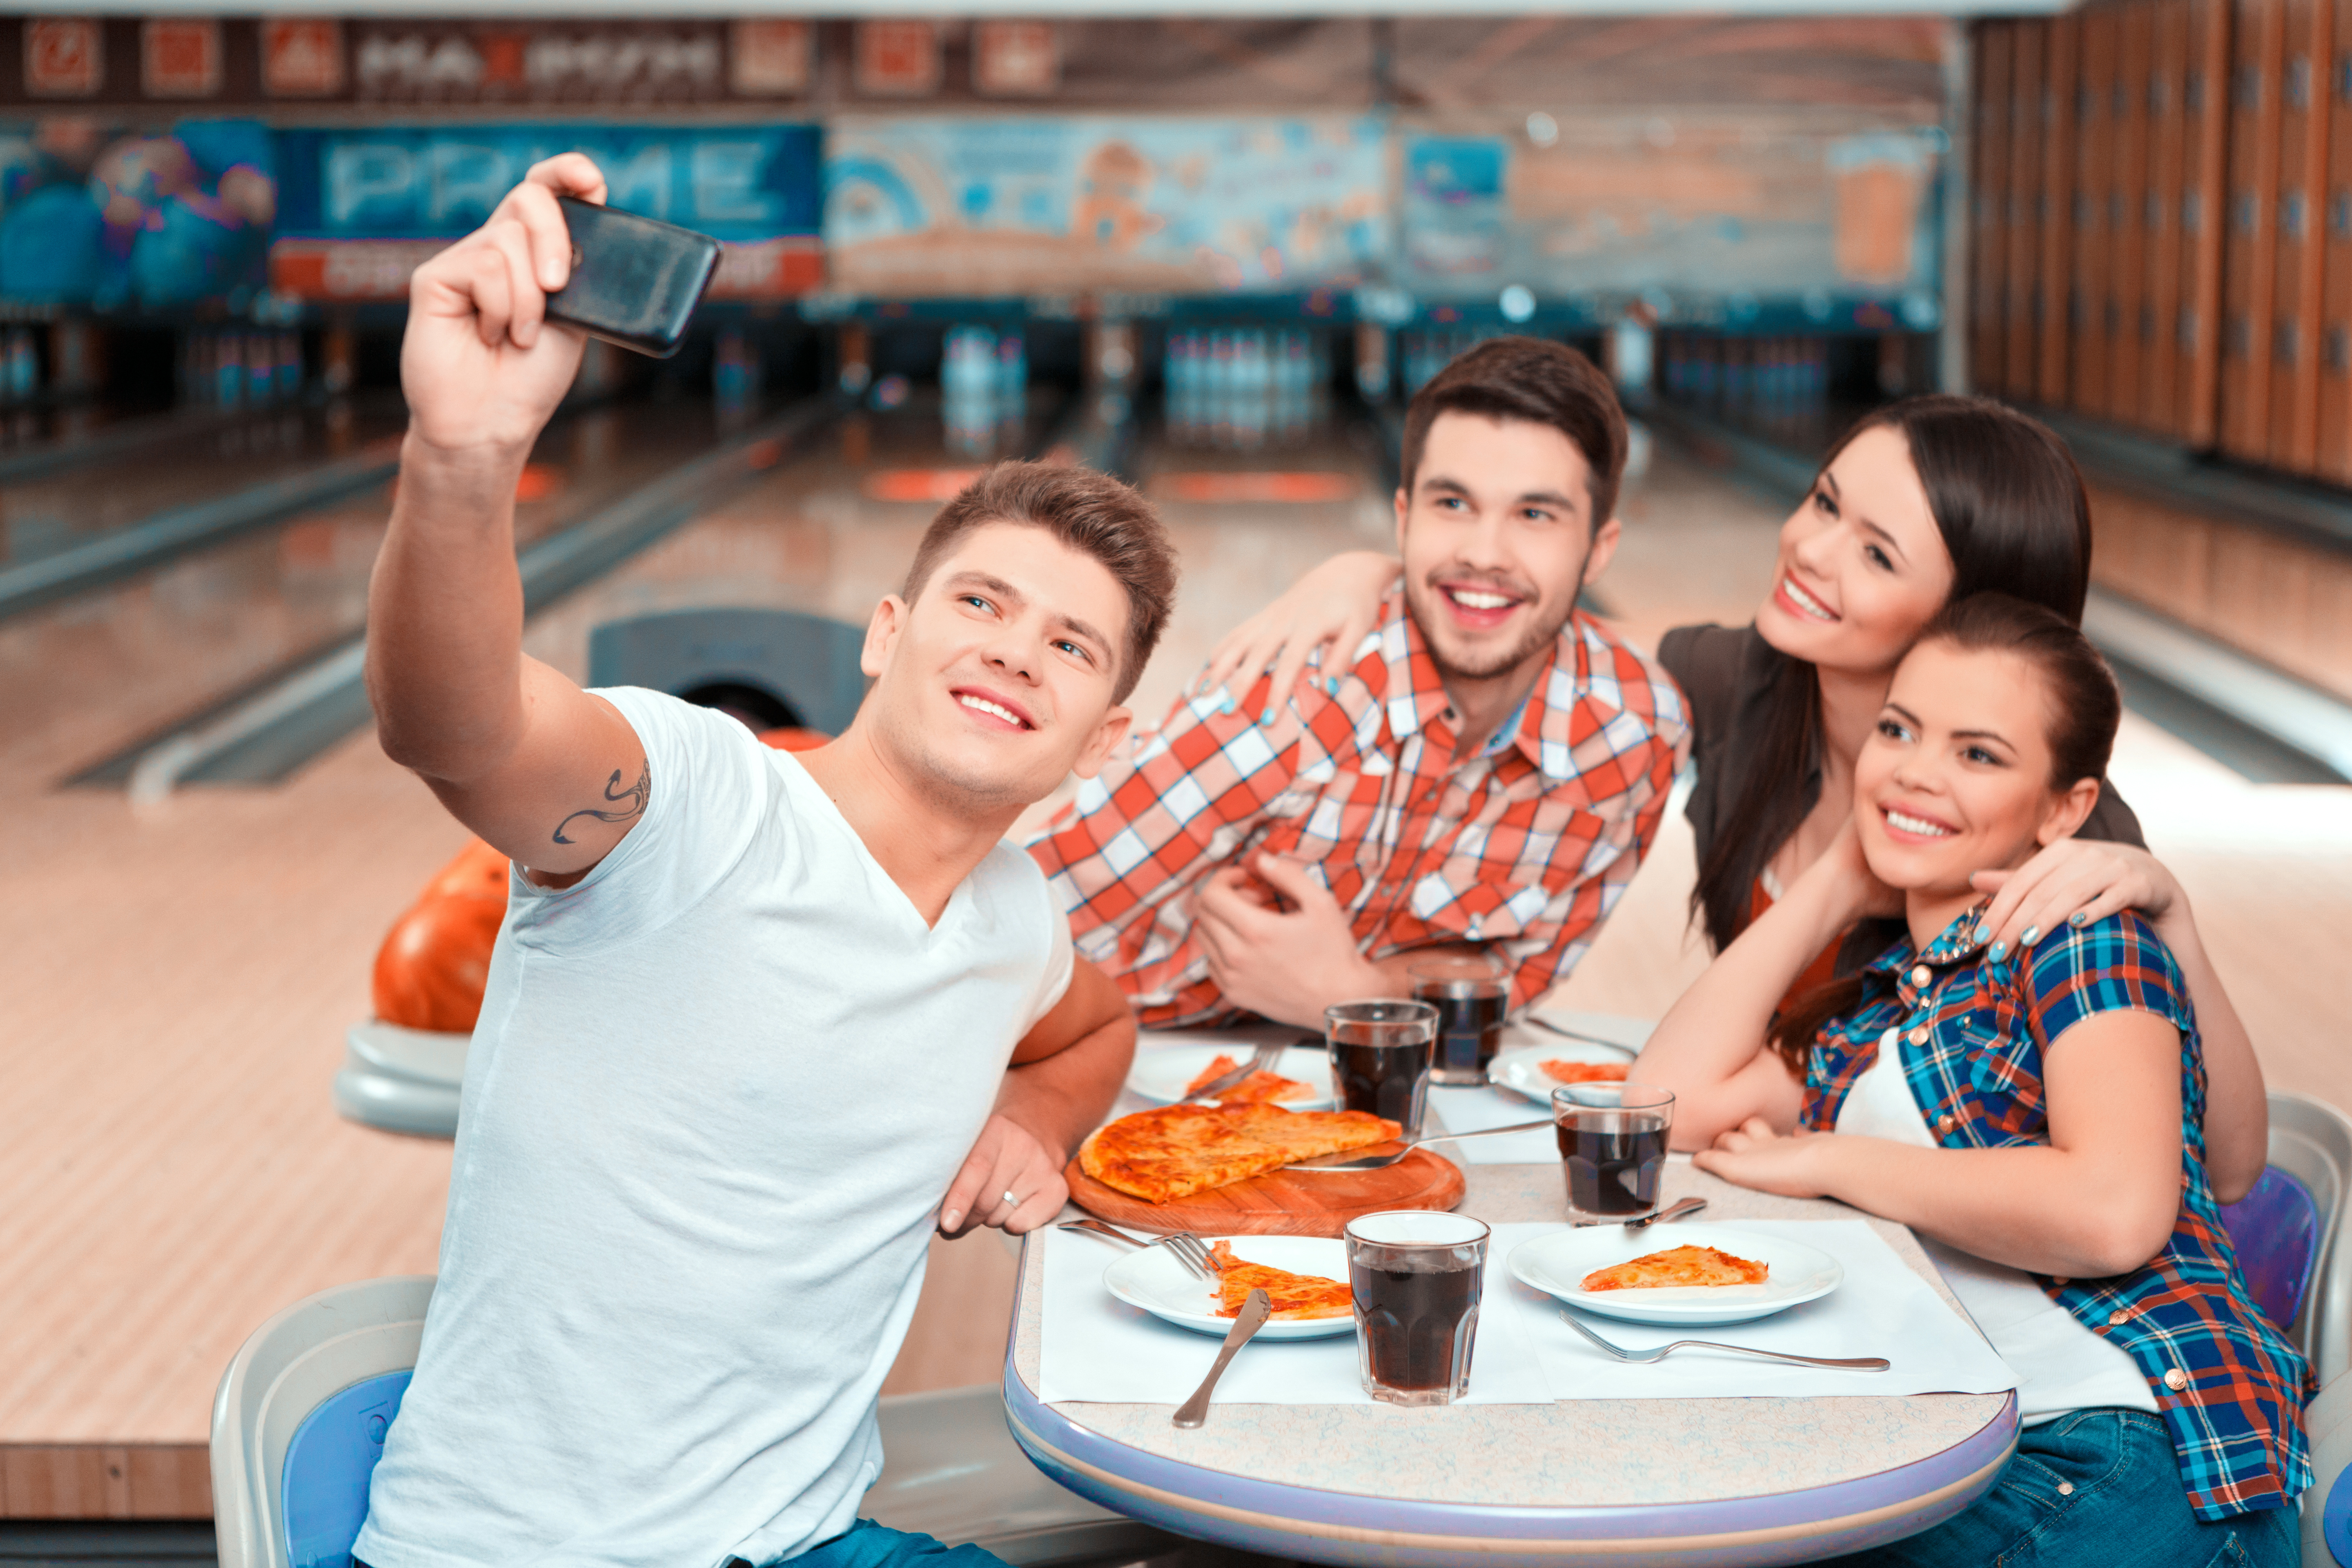 bowling and pizza on lanes | walk up snack bar | sluggers sports bar | bowling appleton | appleton, wi | super bowl family entertainment center